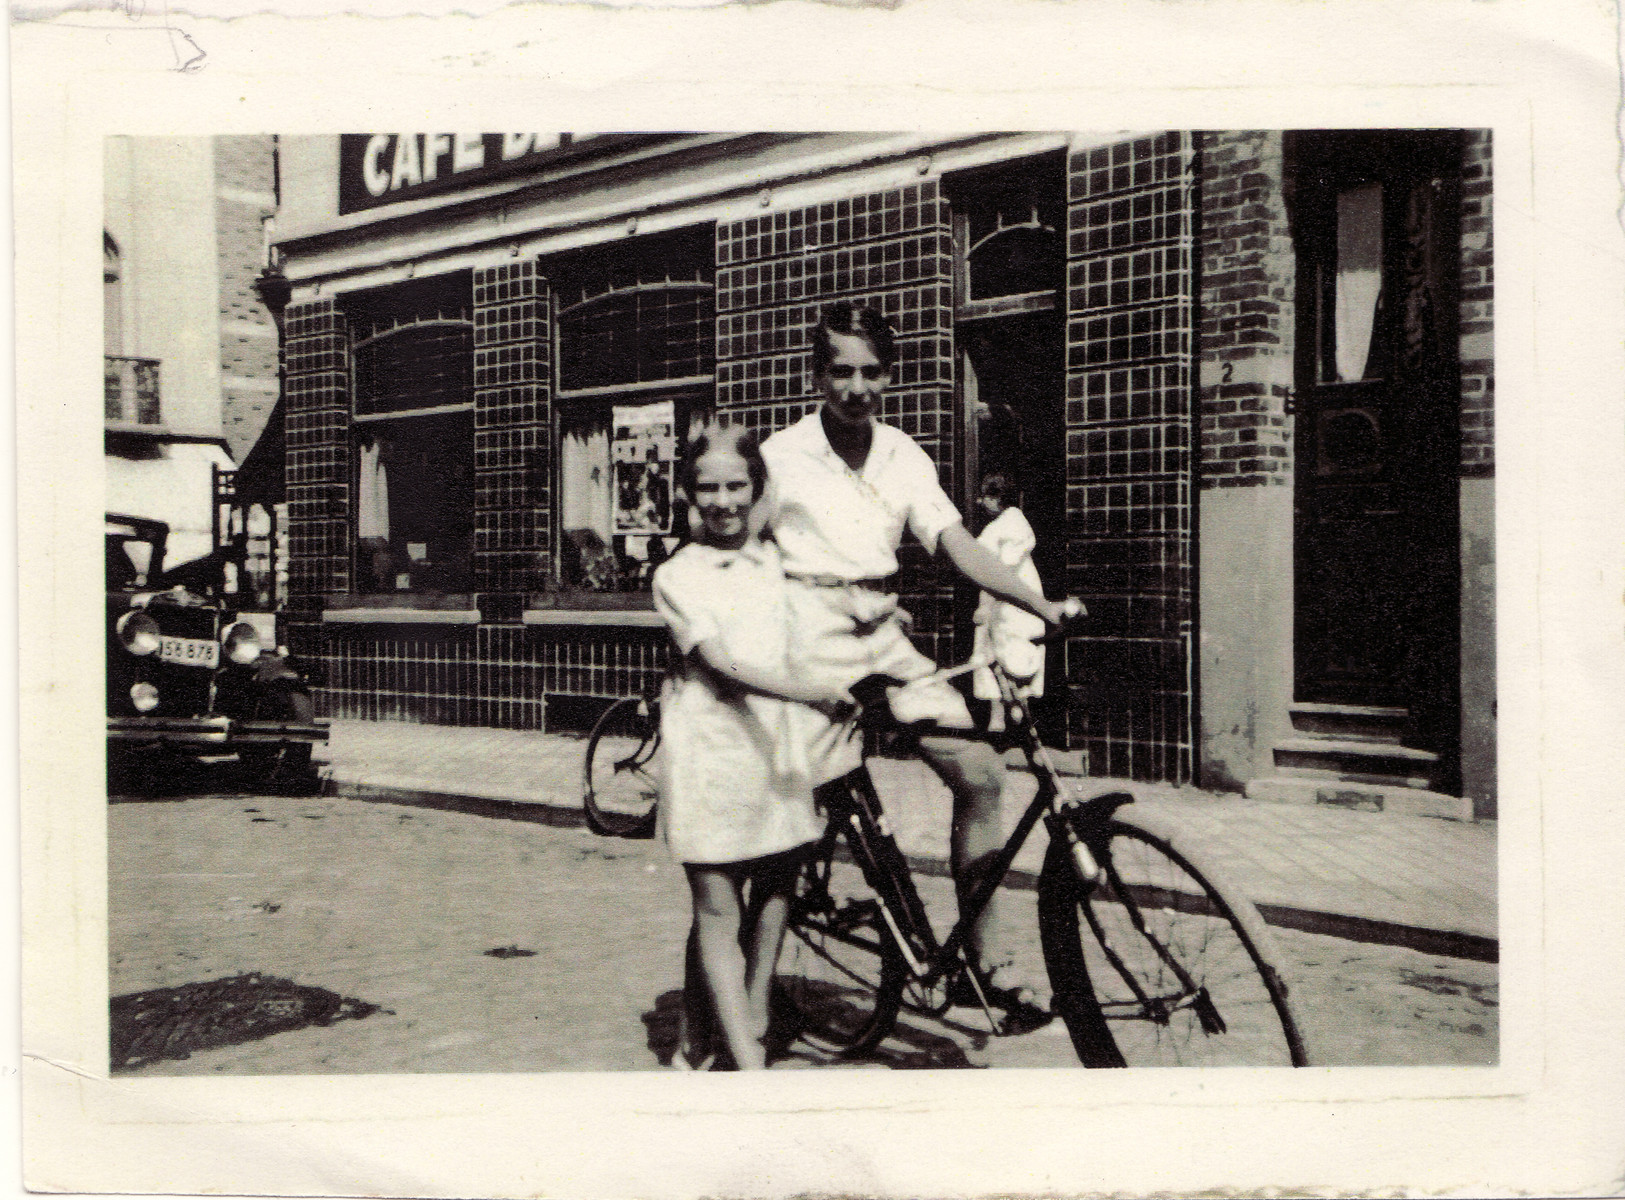 Eva and Heinz Geiringer pose with a bicycle on a street in Belgium after fleeing Vienna.